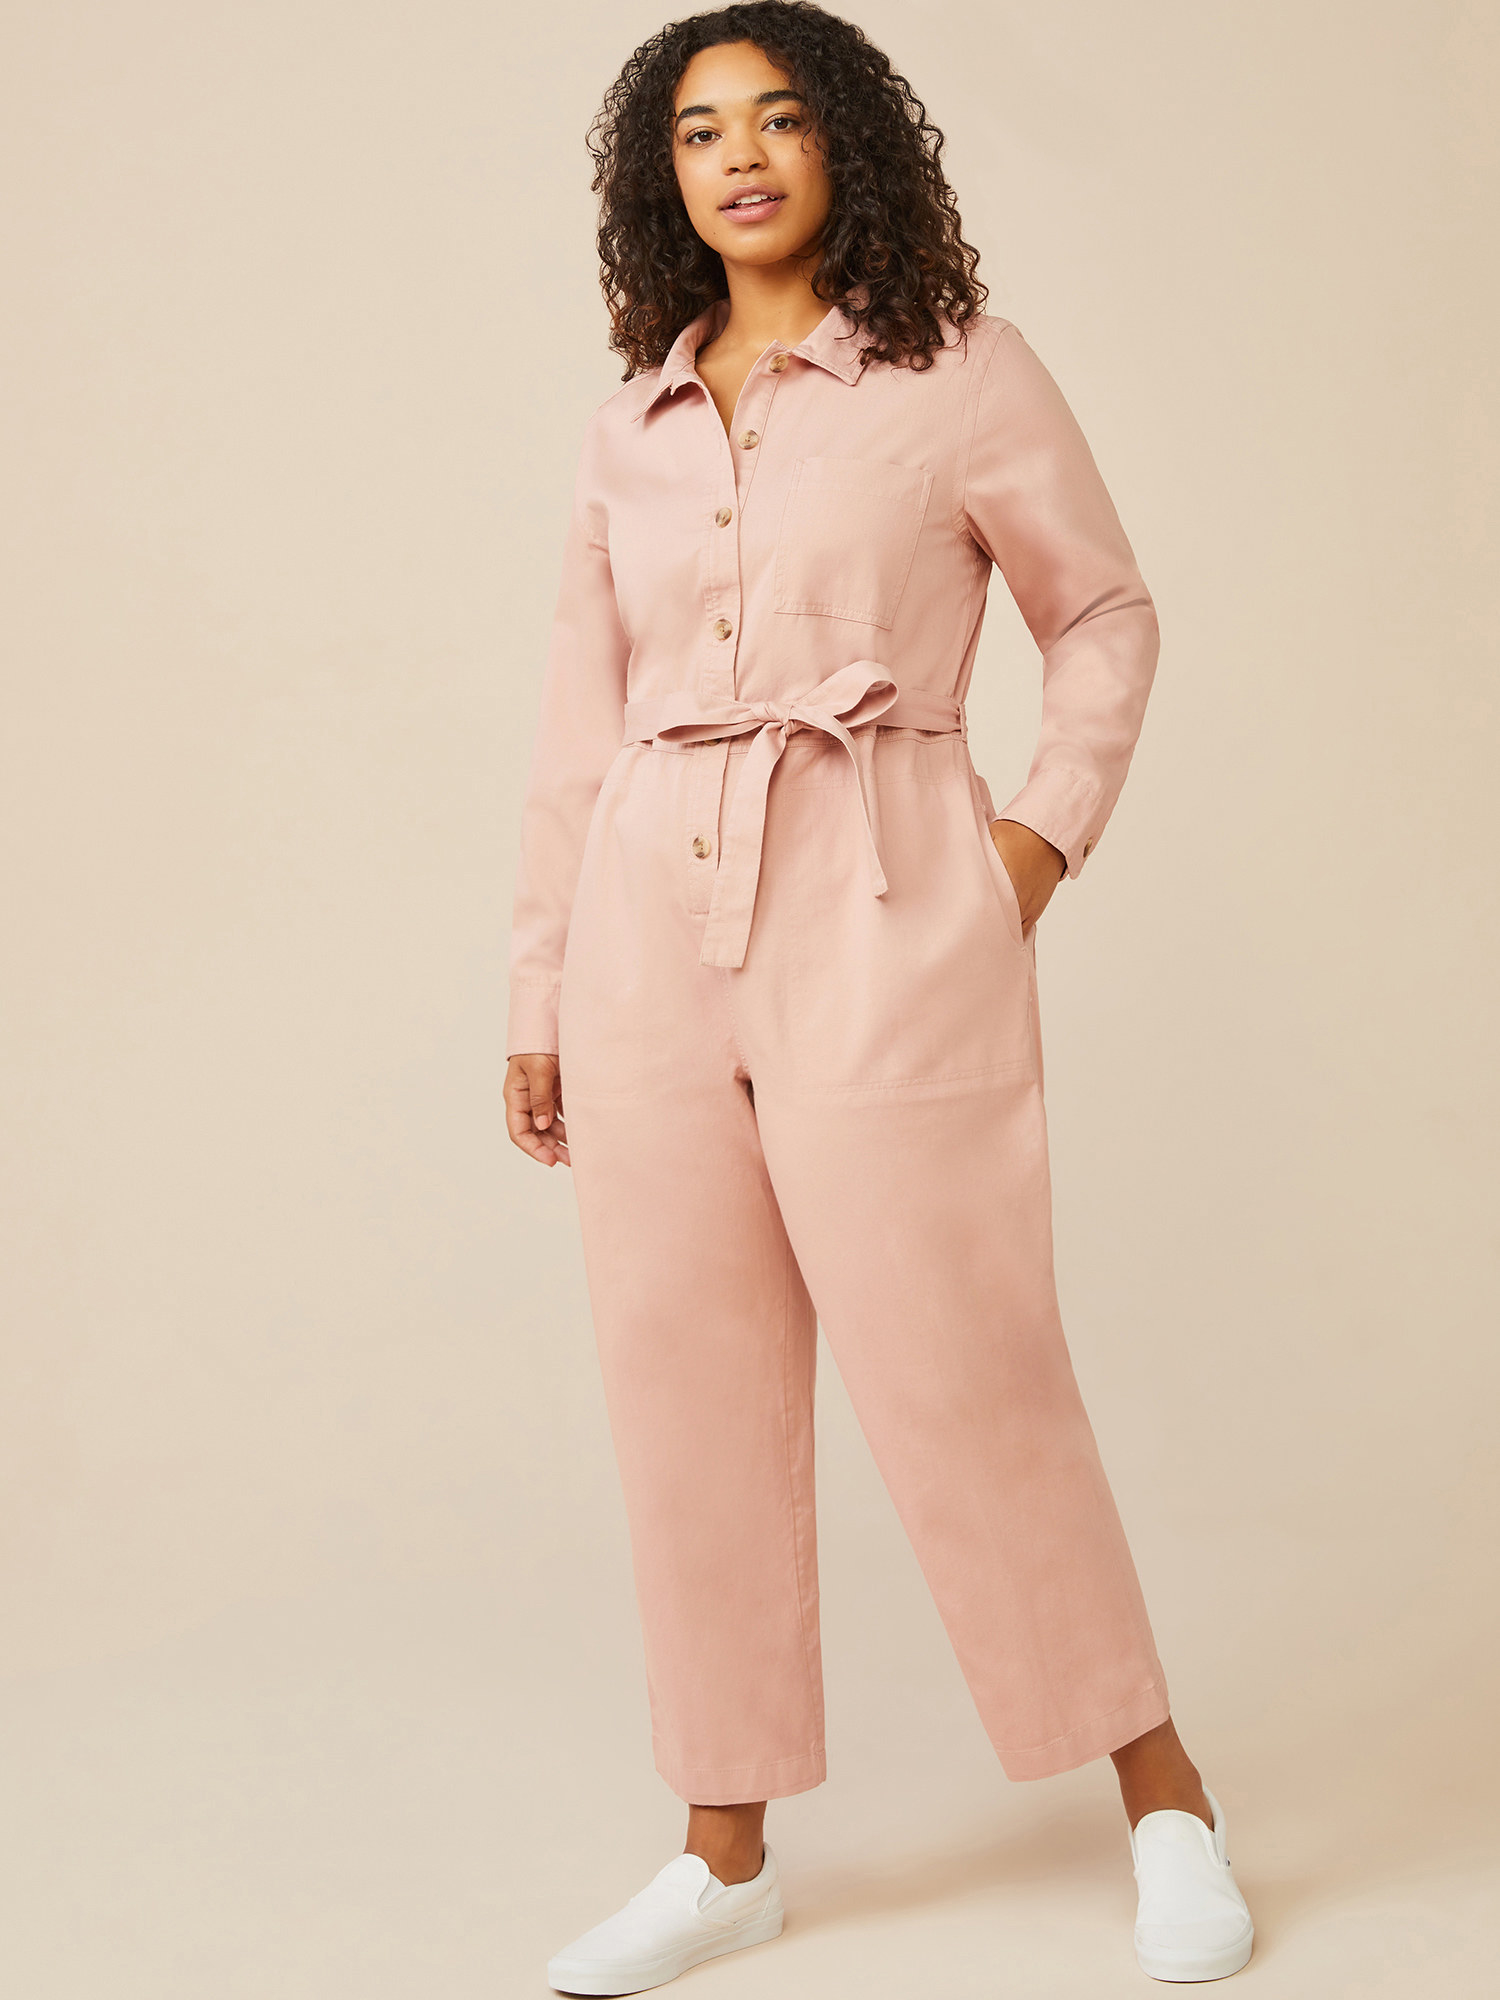 model wearing the pastel pink coverall